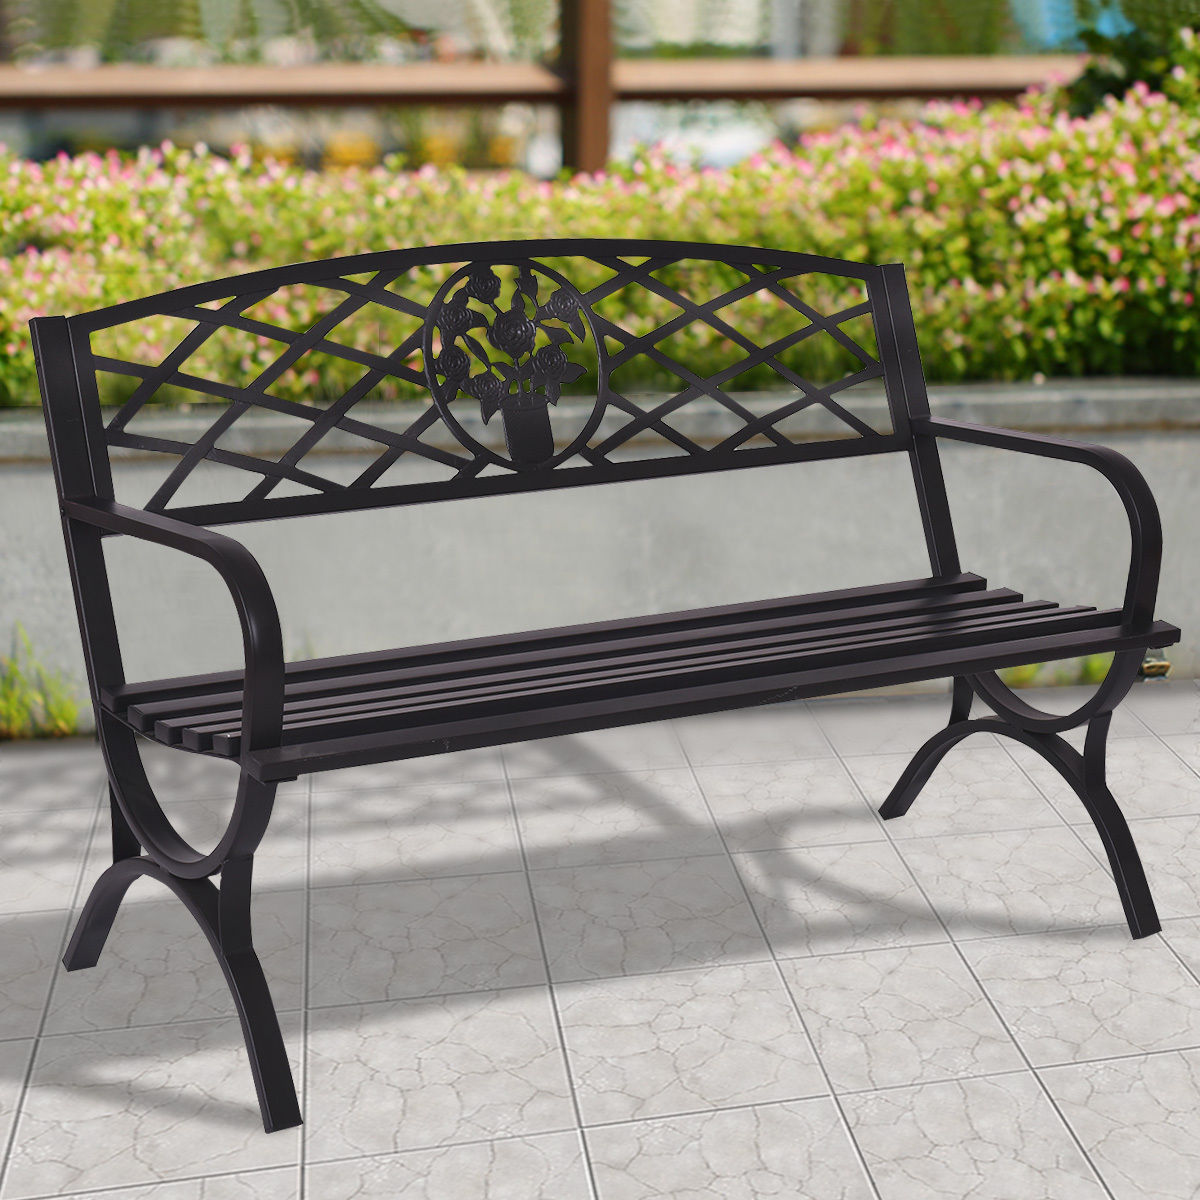 Giantex 50 Patio Garden Bench Metal Black Park Yard Outdoor Furniture Durable Steel Frame Porch Chair Seat OP3139 outdoor 2person canopy swing chair patio hammock seat yard porch furniture steel page 1